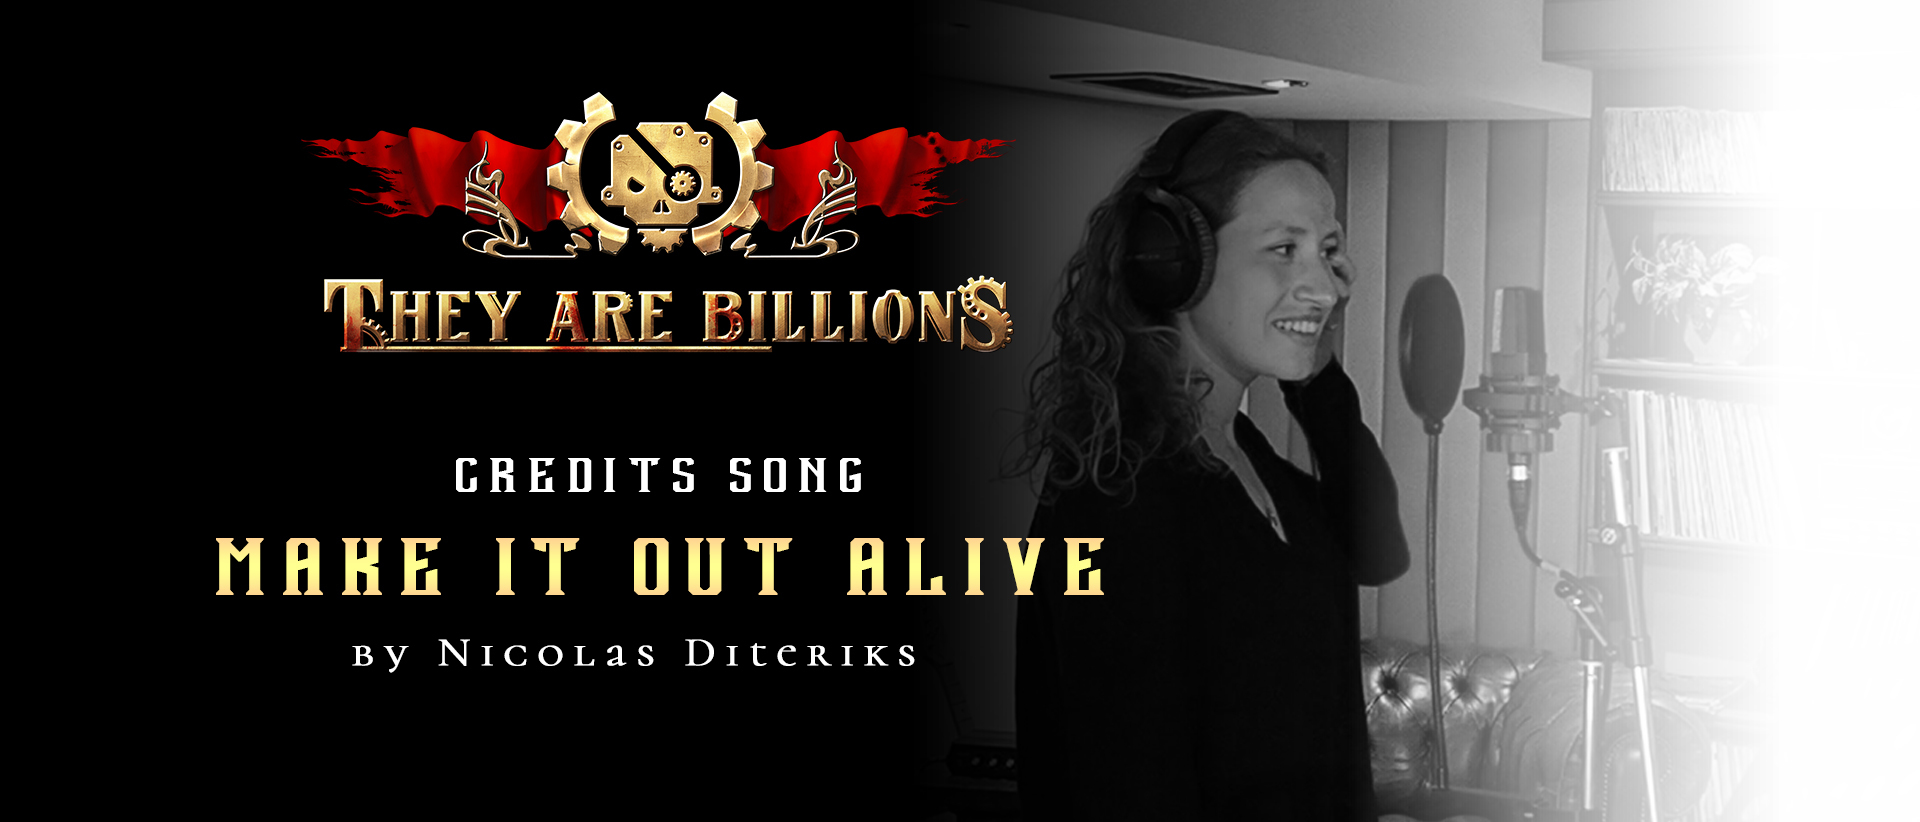 They Are Billions Credits Song - Make It Out Alive